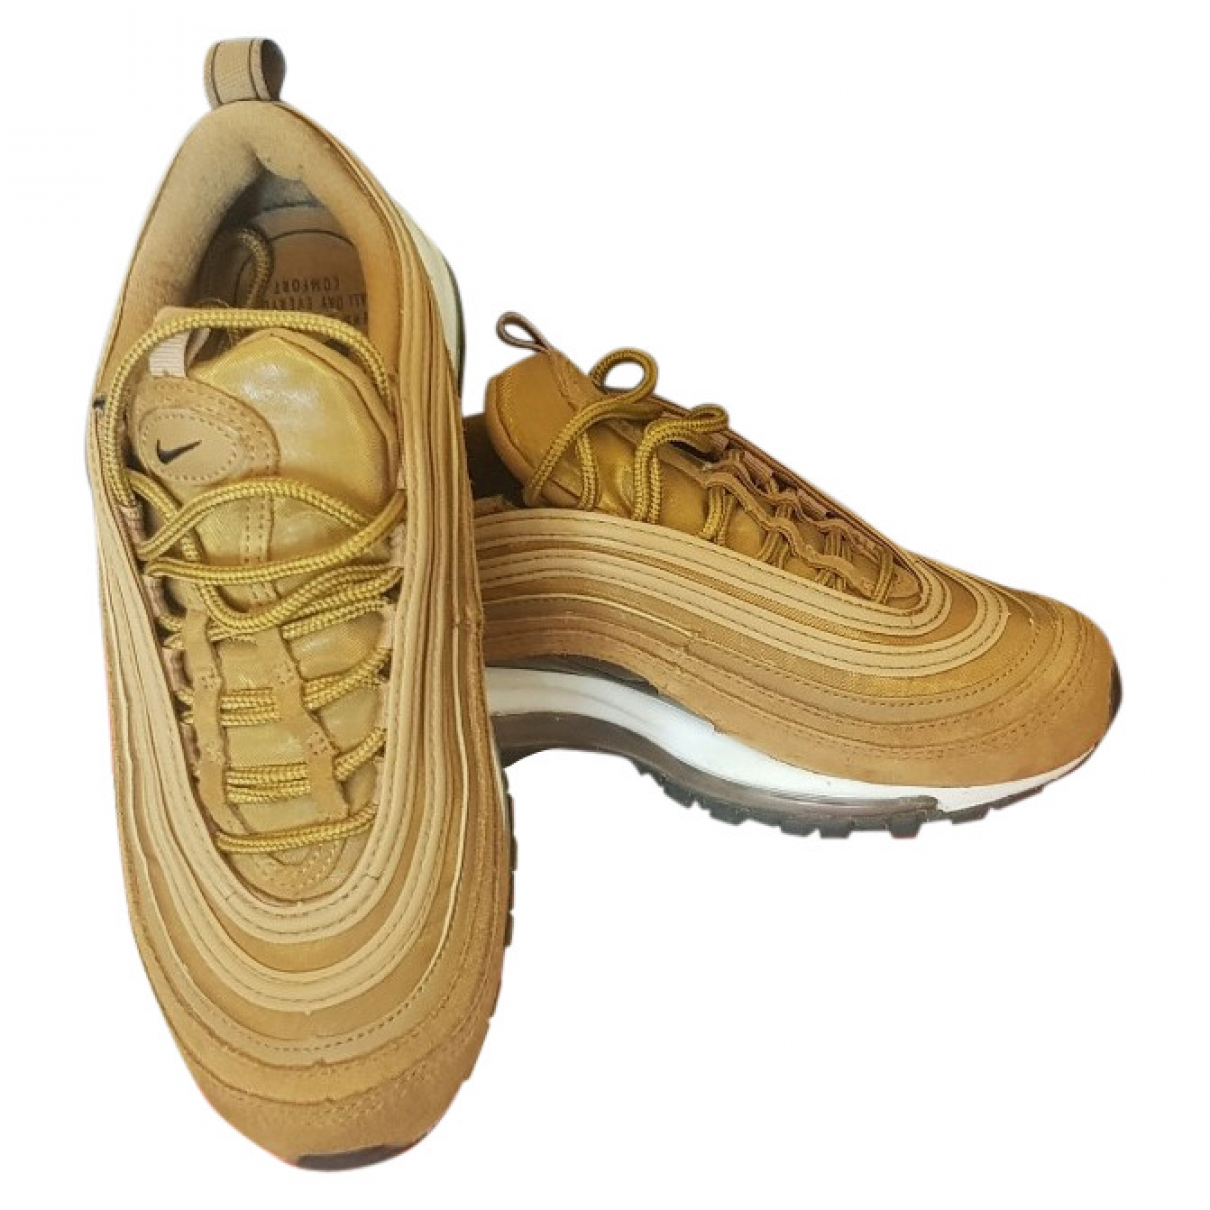 Nike Air Max 97 Camel Leather Trainers for Women 36 EU